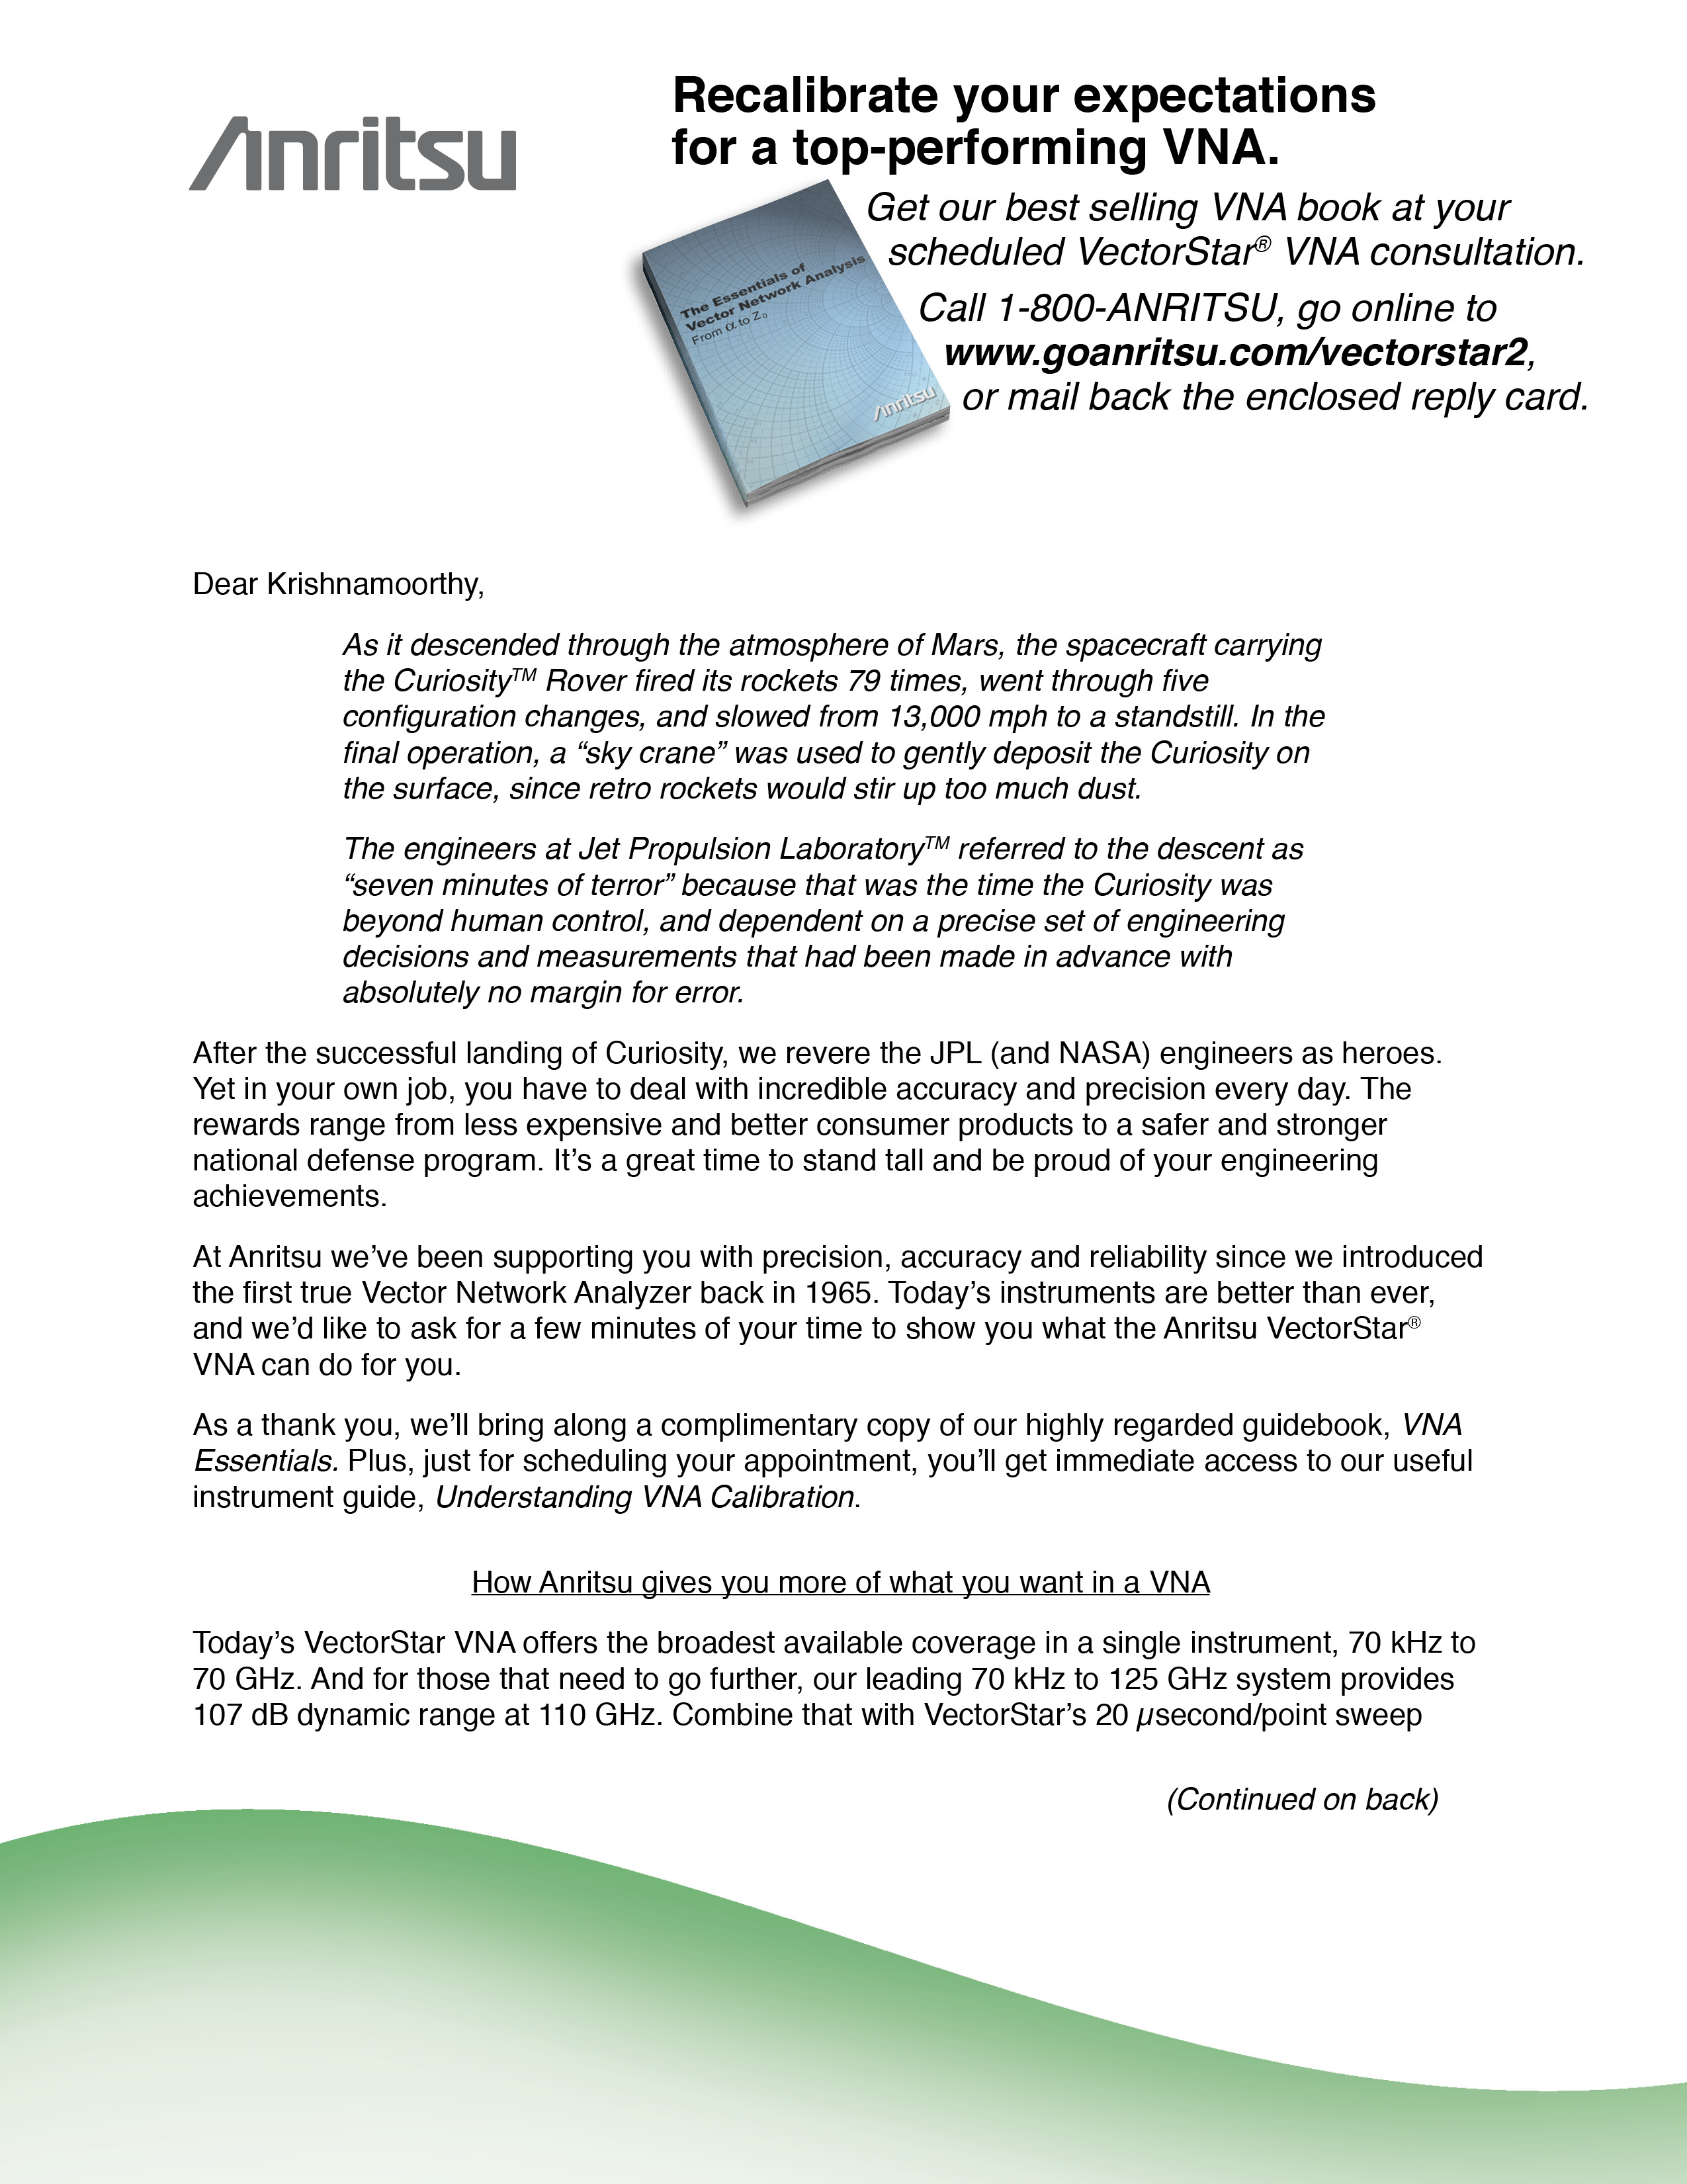 letter to prospects linking the precision of the mars curiosity rover with the precision of engineers